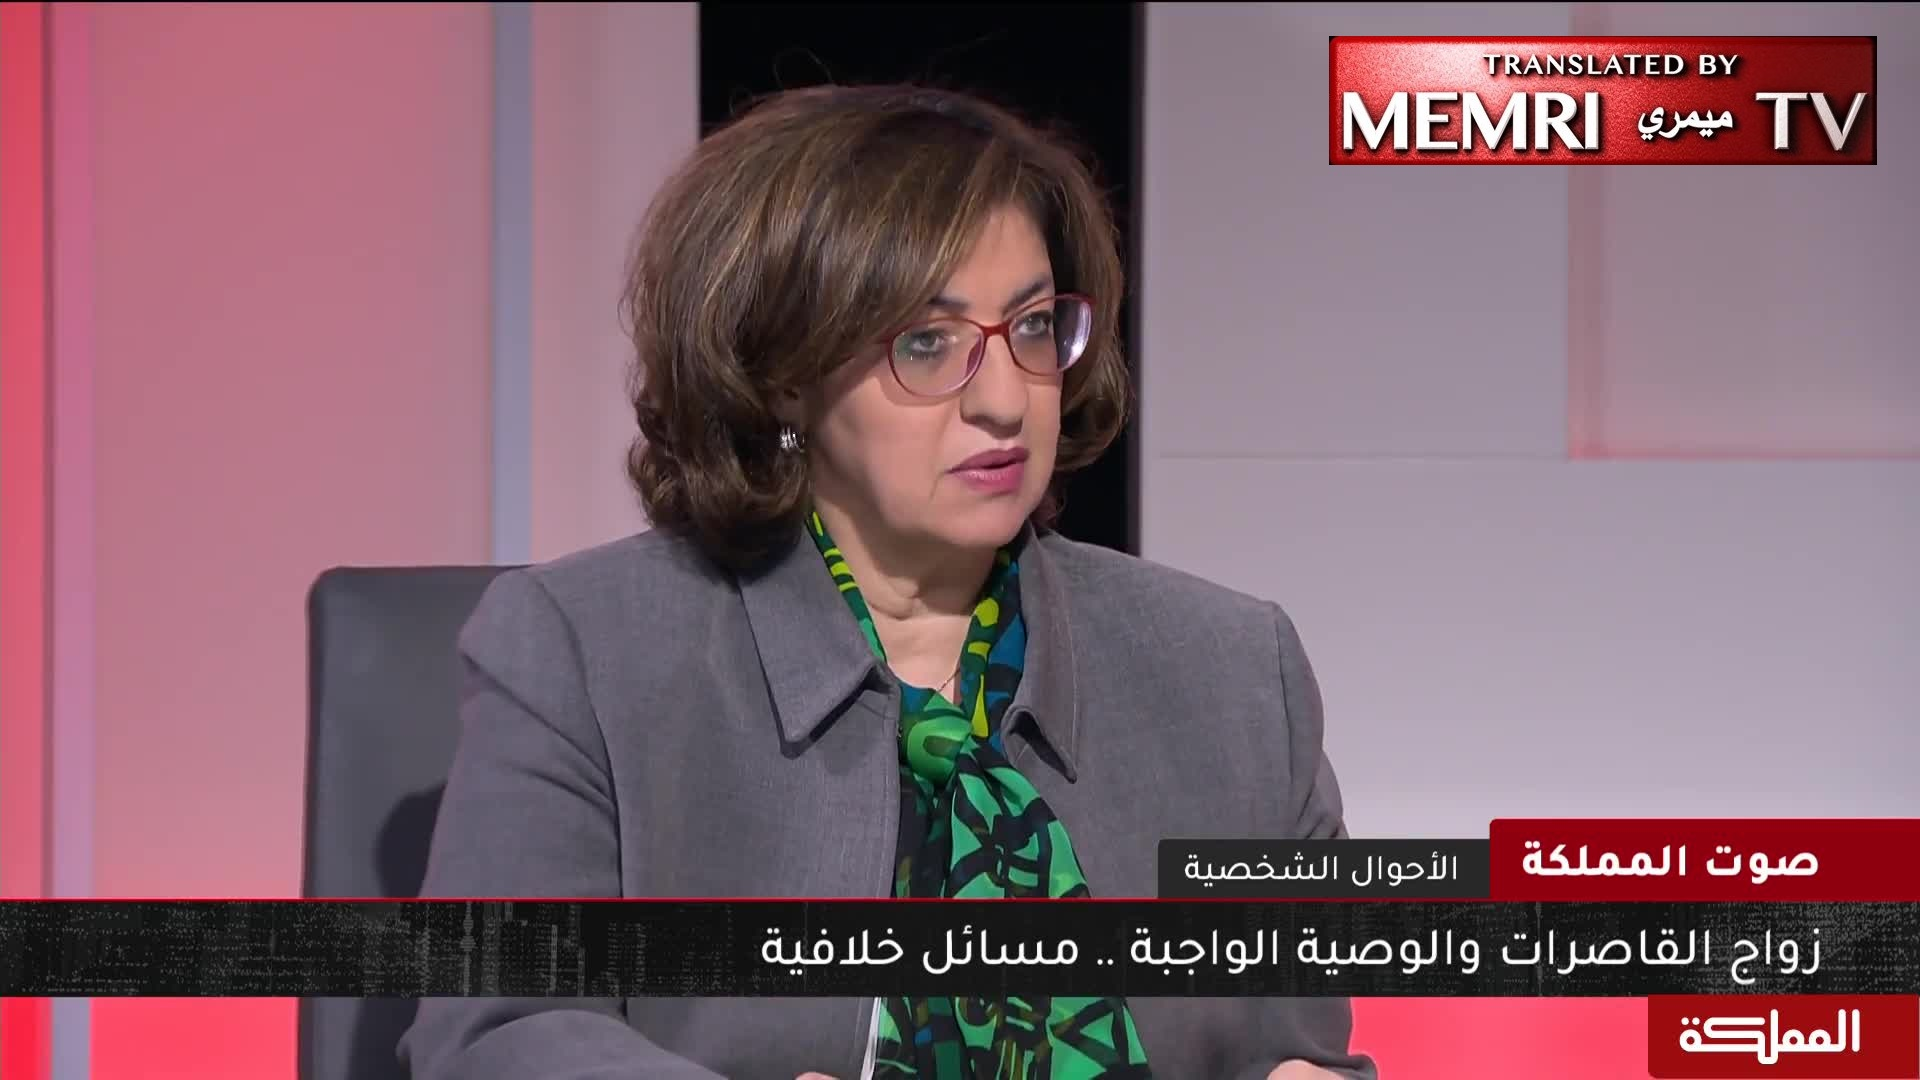 Jordanian Activist Reem Abu Hassan during Debate on Child Marriage: People Shouldn't Have More Kids Than They Can Afford to Support